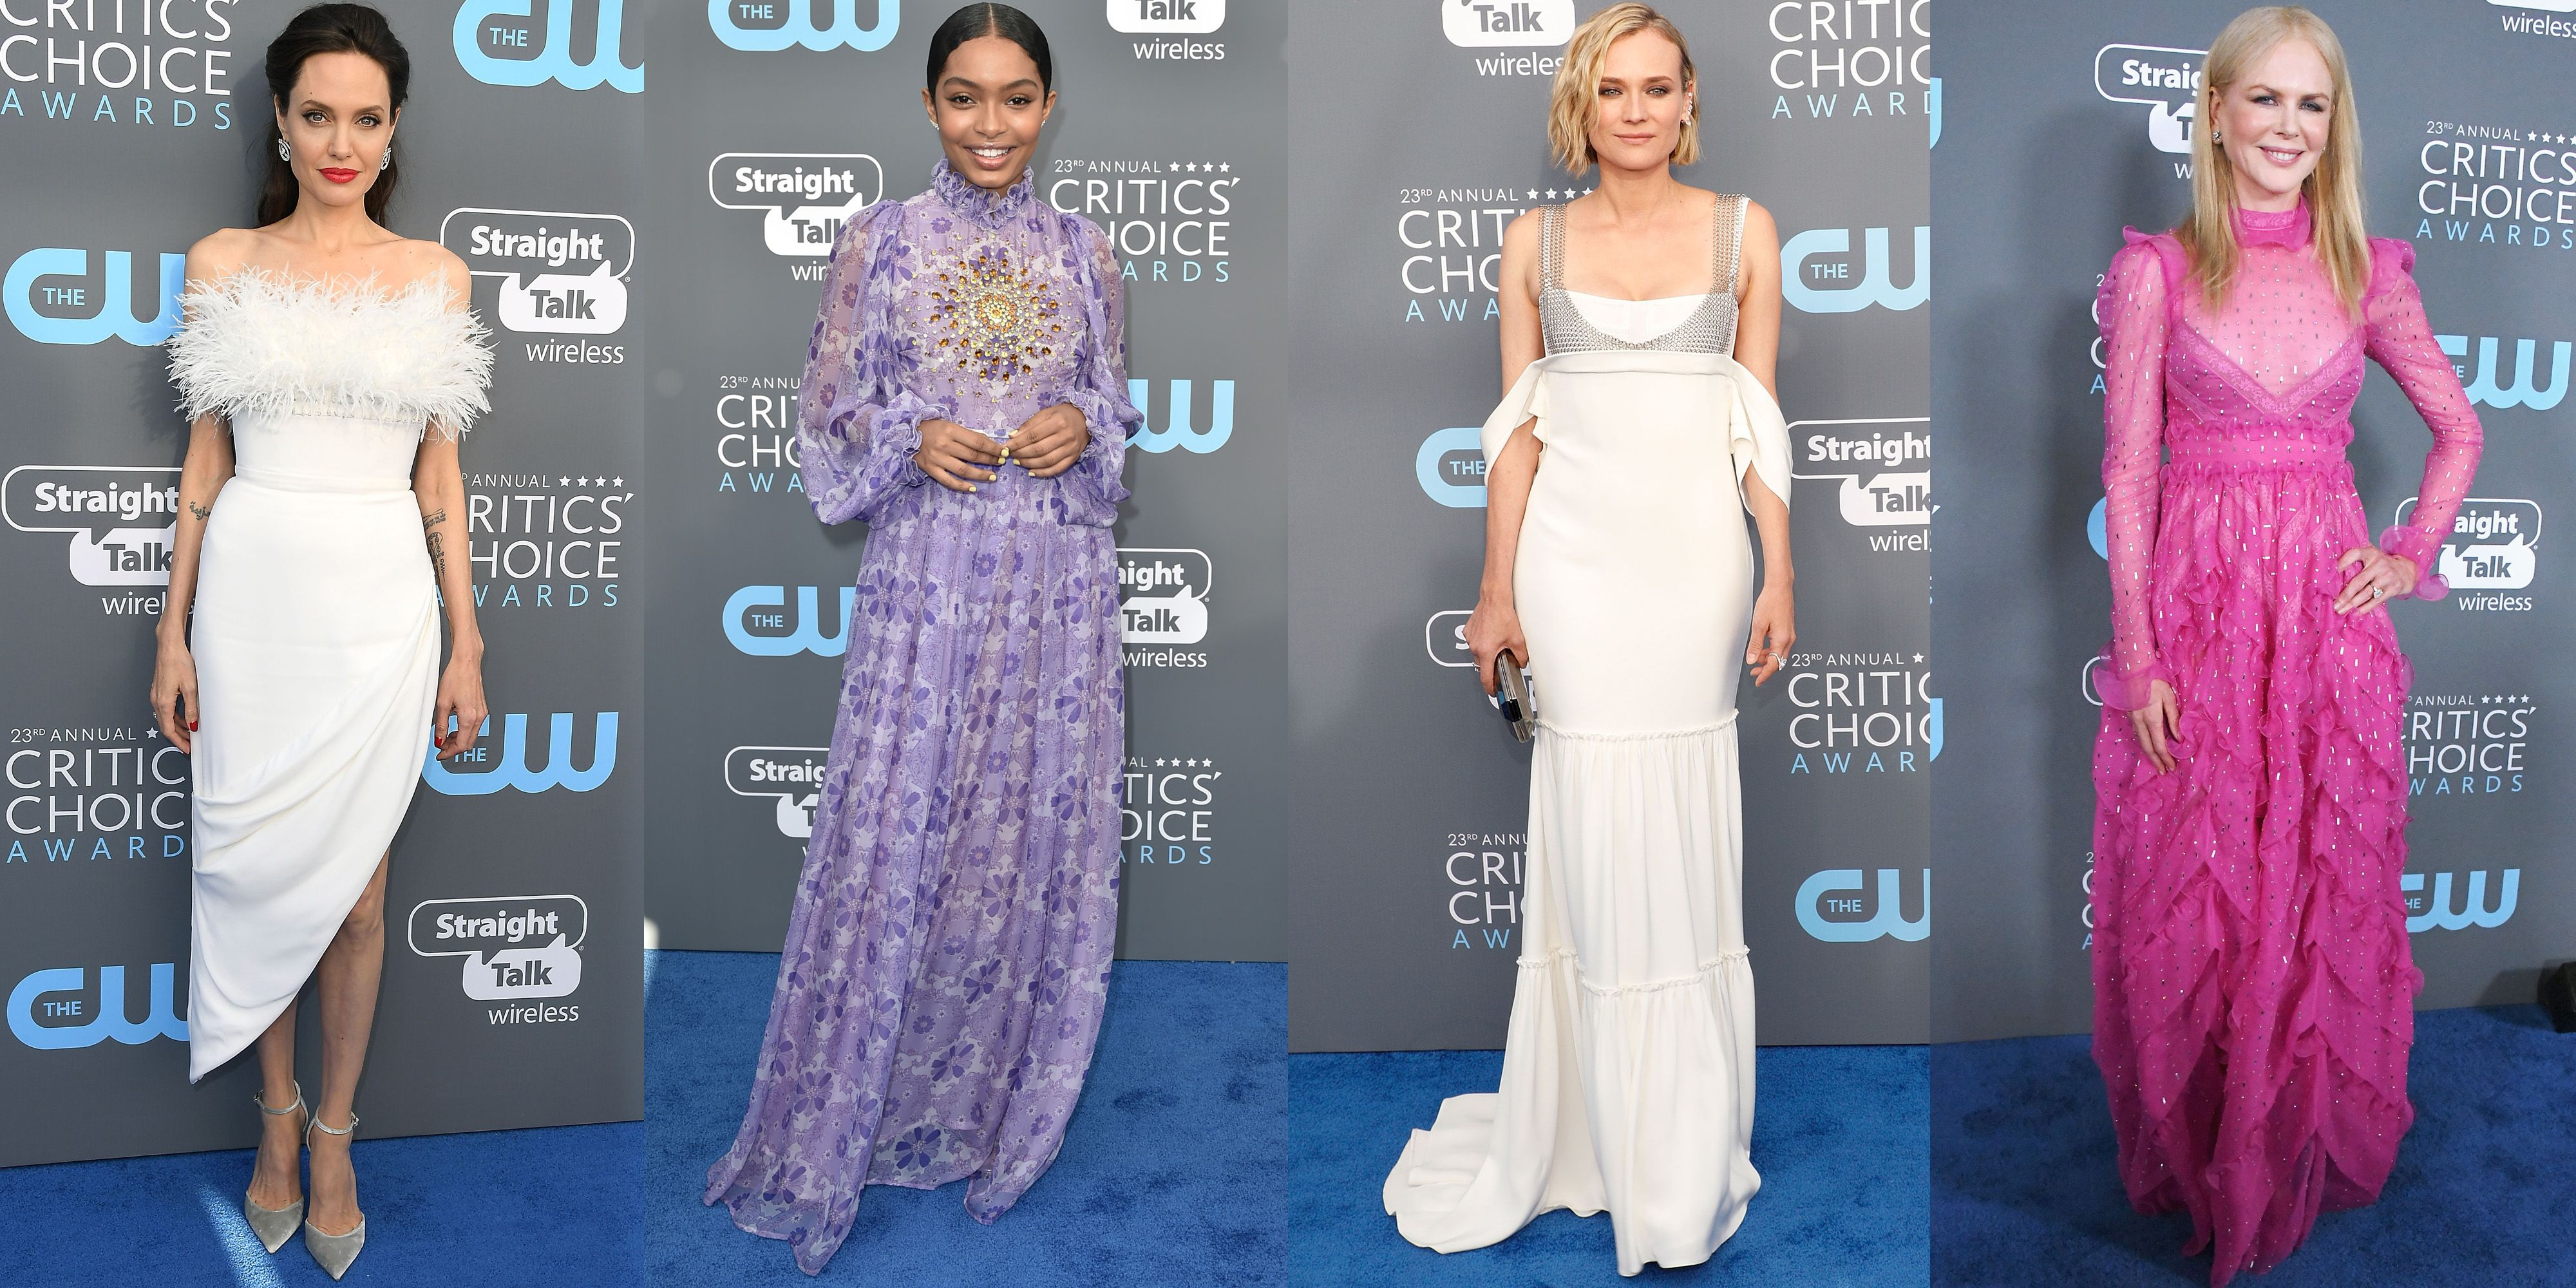 Women Embrace Spring Colors at Critics' Choice Awards After Golden Globes Blackout